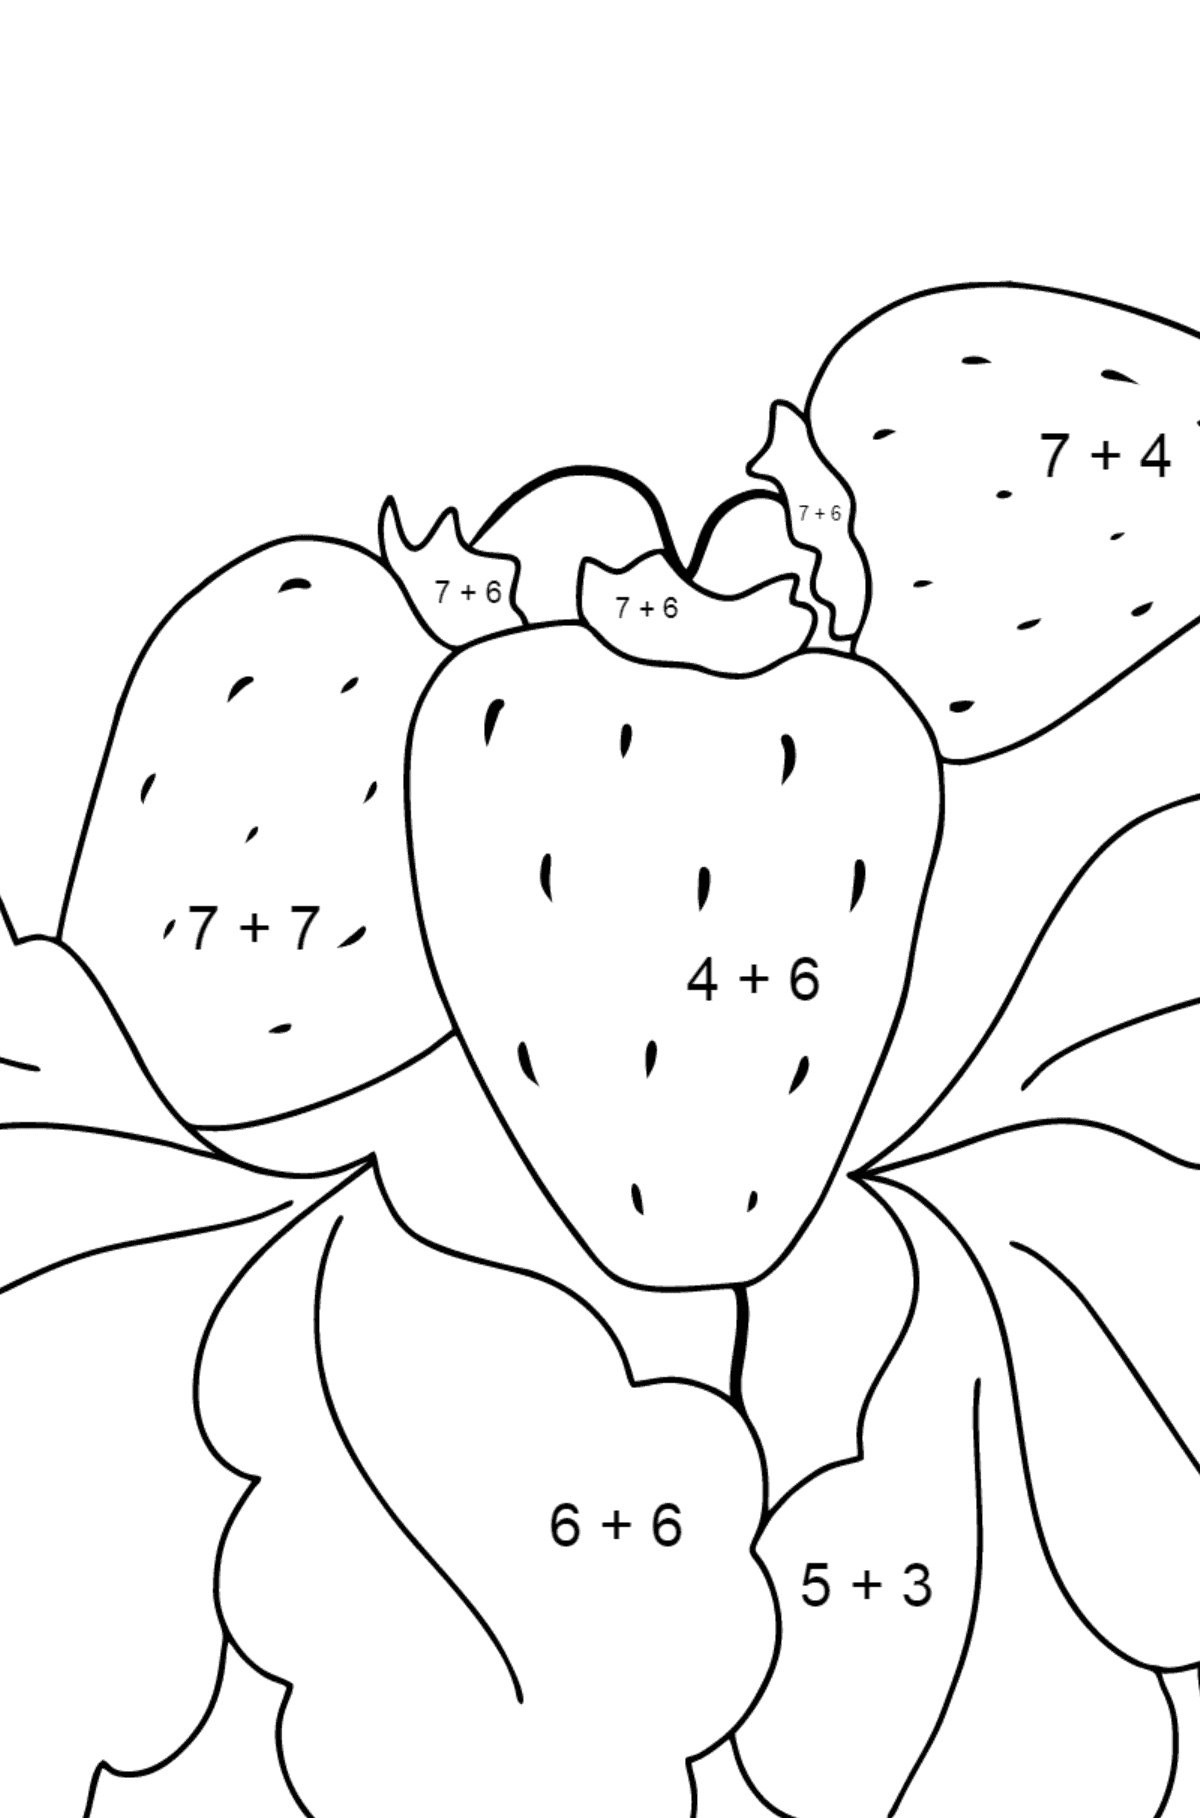 Coloring Page - Summer and Strawberries - Math Coloring - Addition for Children